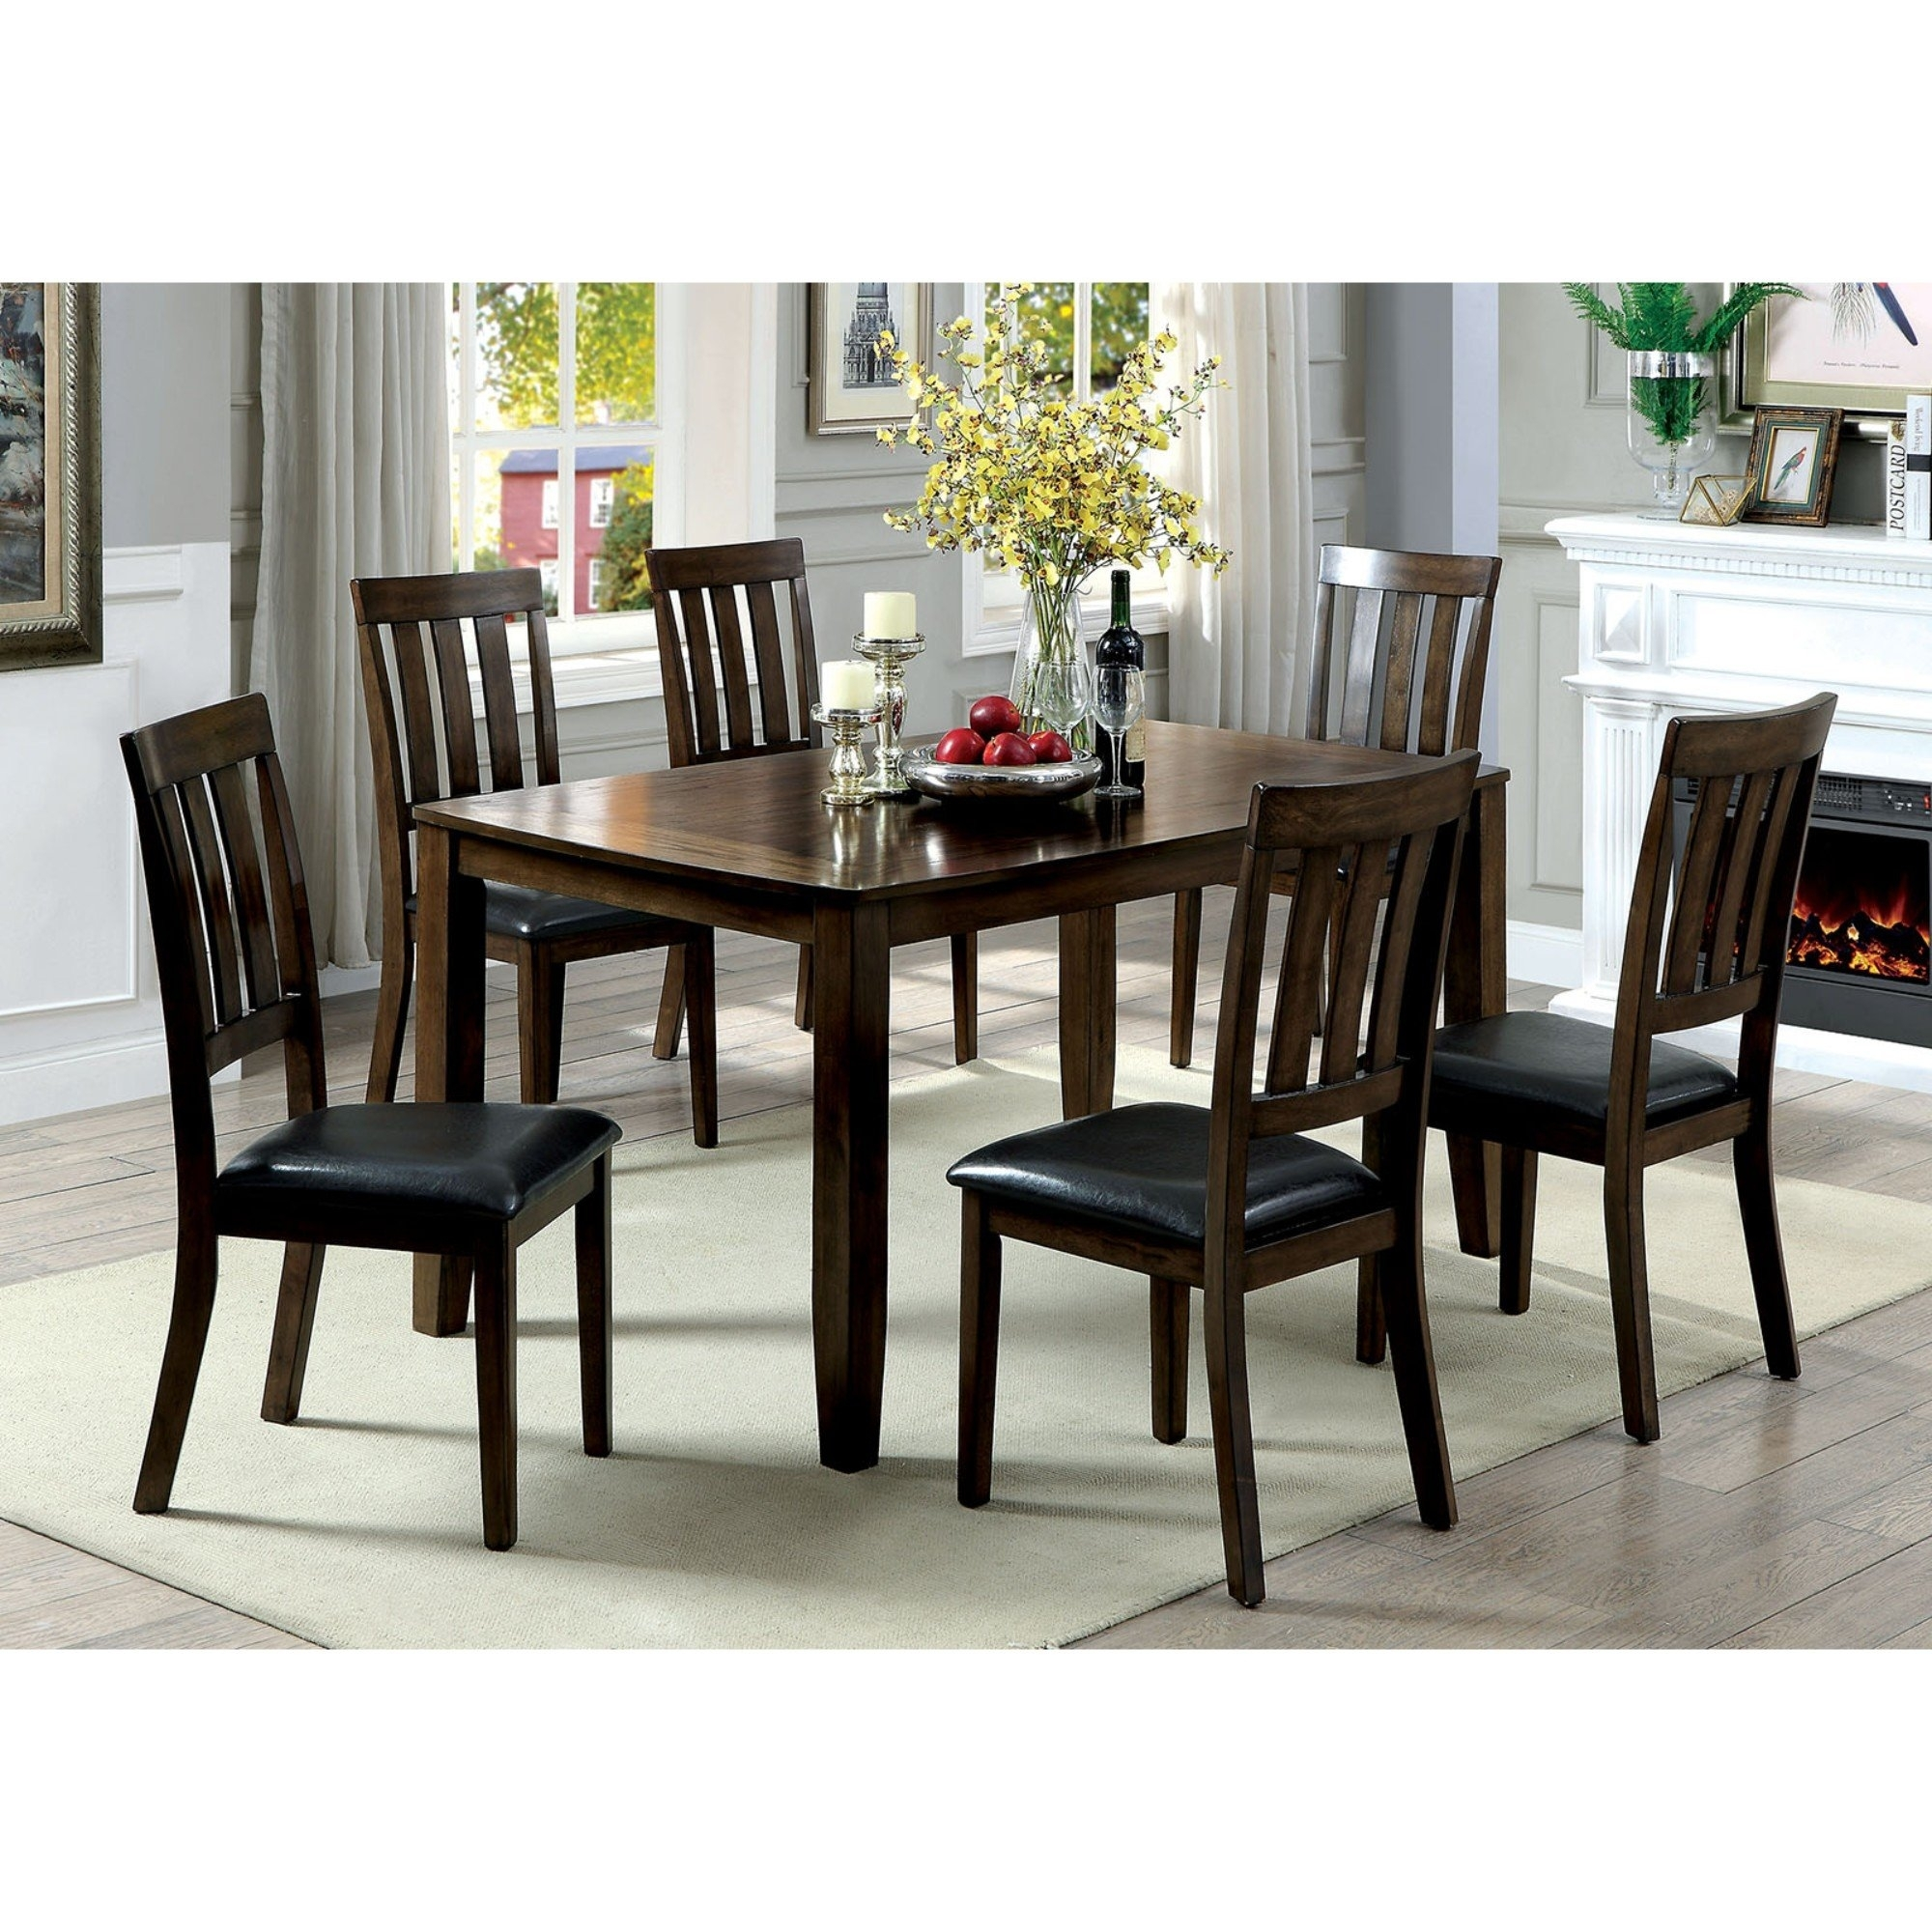 Millwood Pines Devon Wooden 7 Piece Counter Height Dining Table Set Intended For 2017 Candice Ii 5 Piece Round Dining Sets With Slat Back Side Chairs (View 6 of 20)